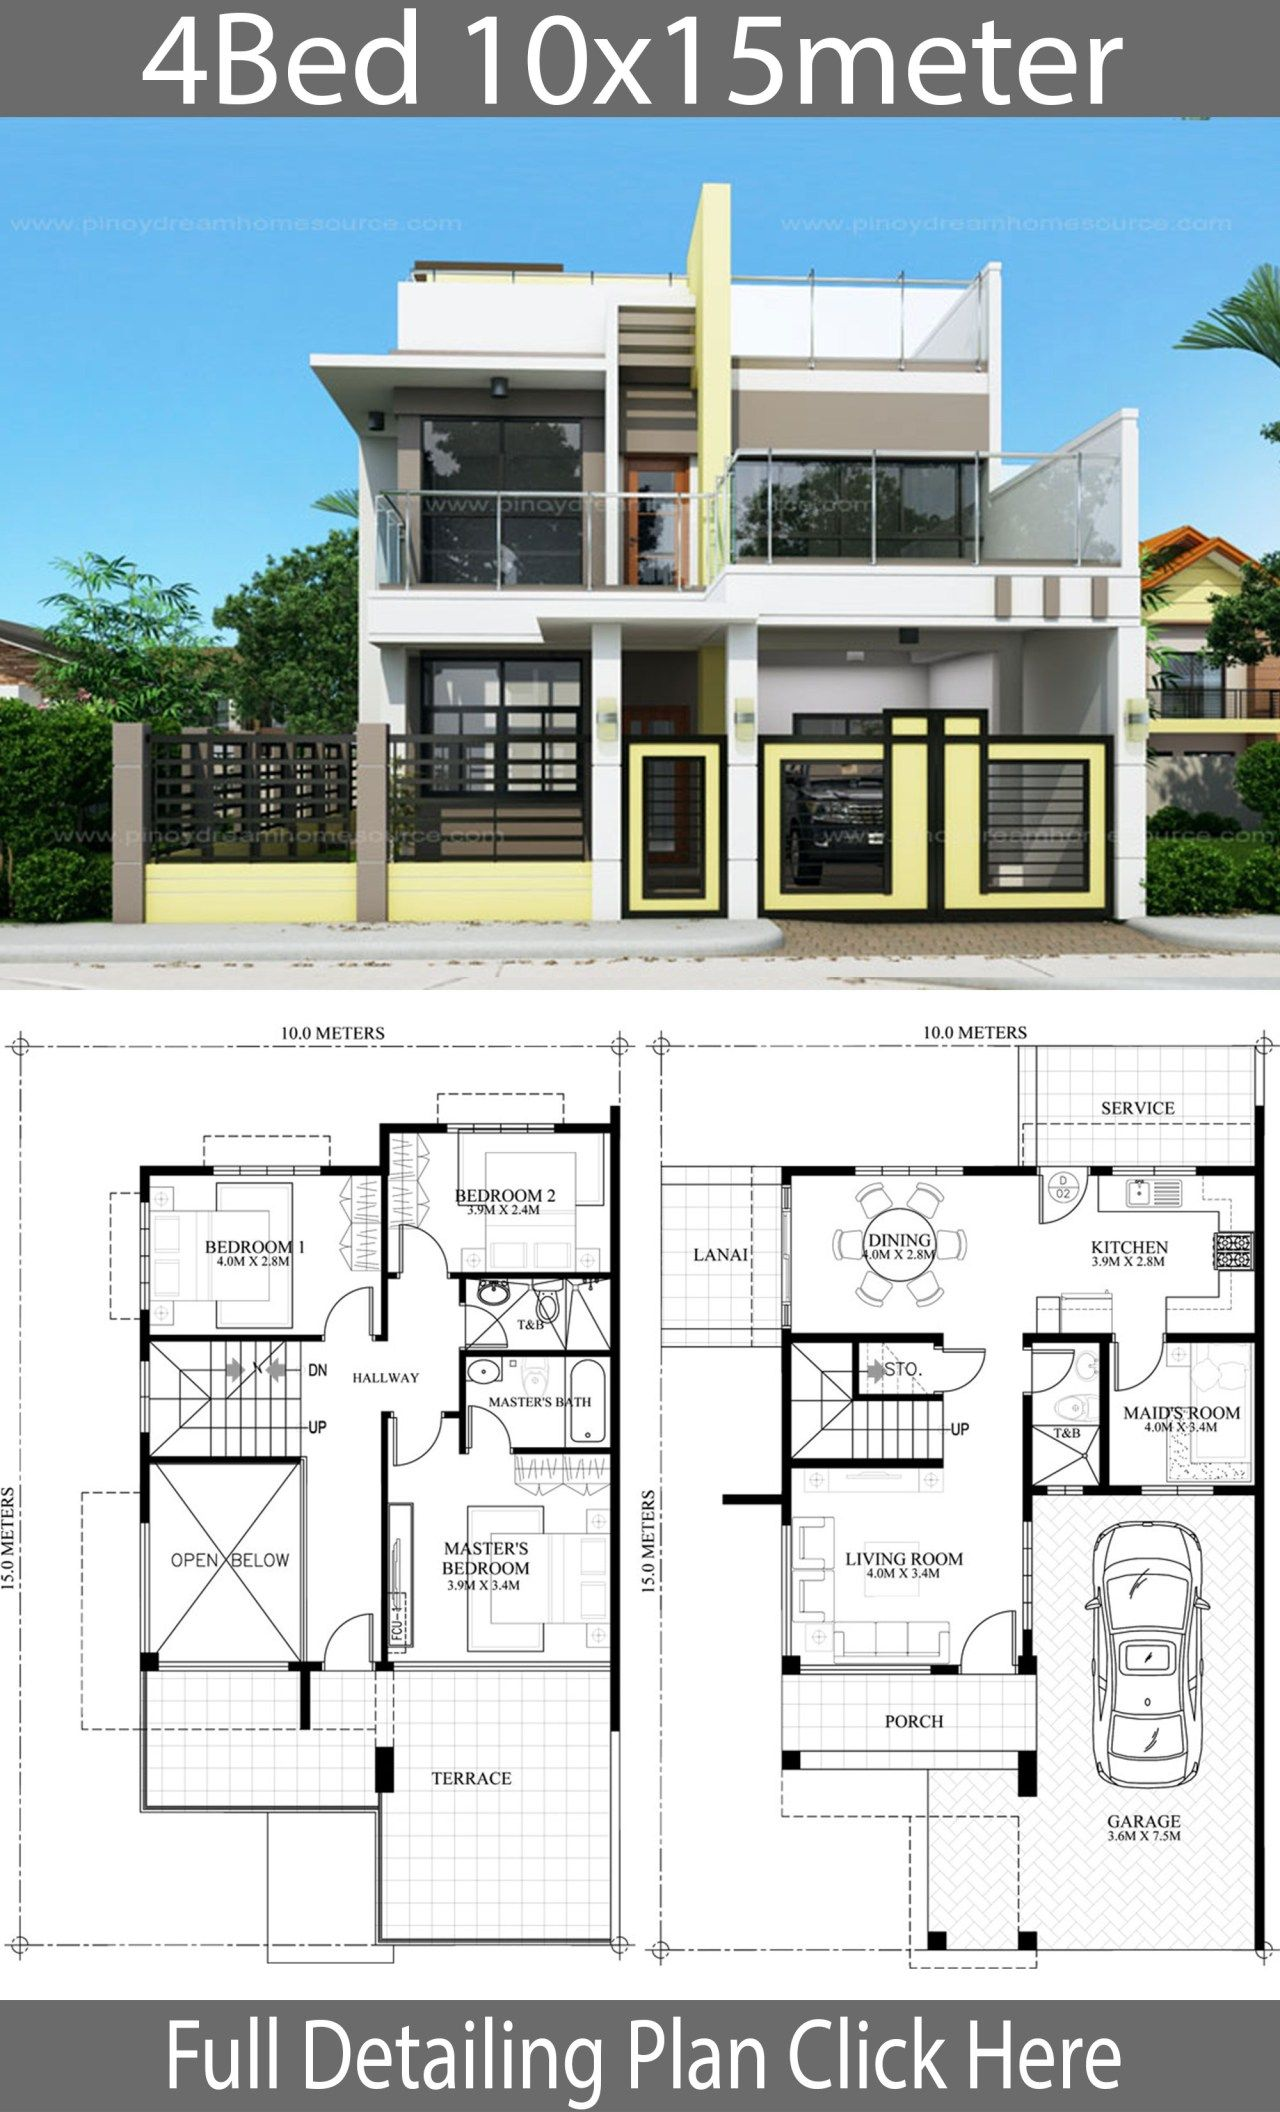 Home Design Plan 10x15m With 4 Bedrooms Home Ideas Home Design Plan House Blueprints 2 Storey House Design